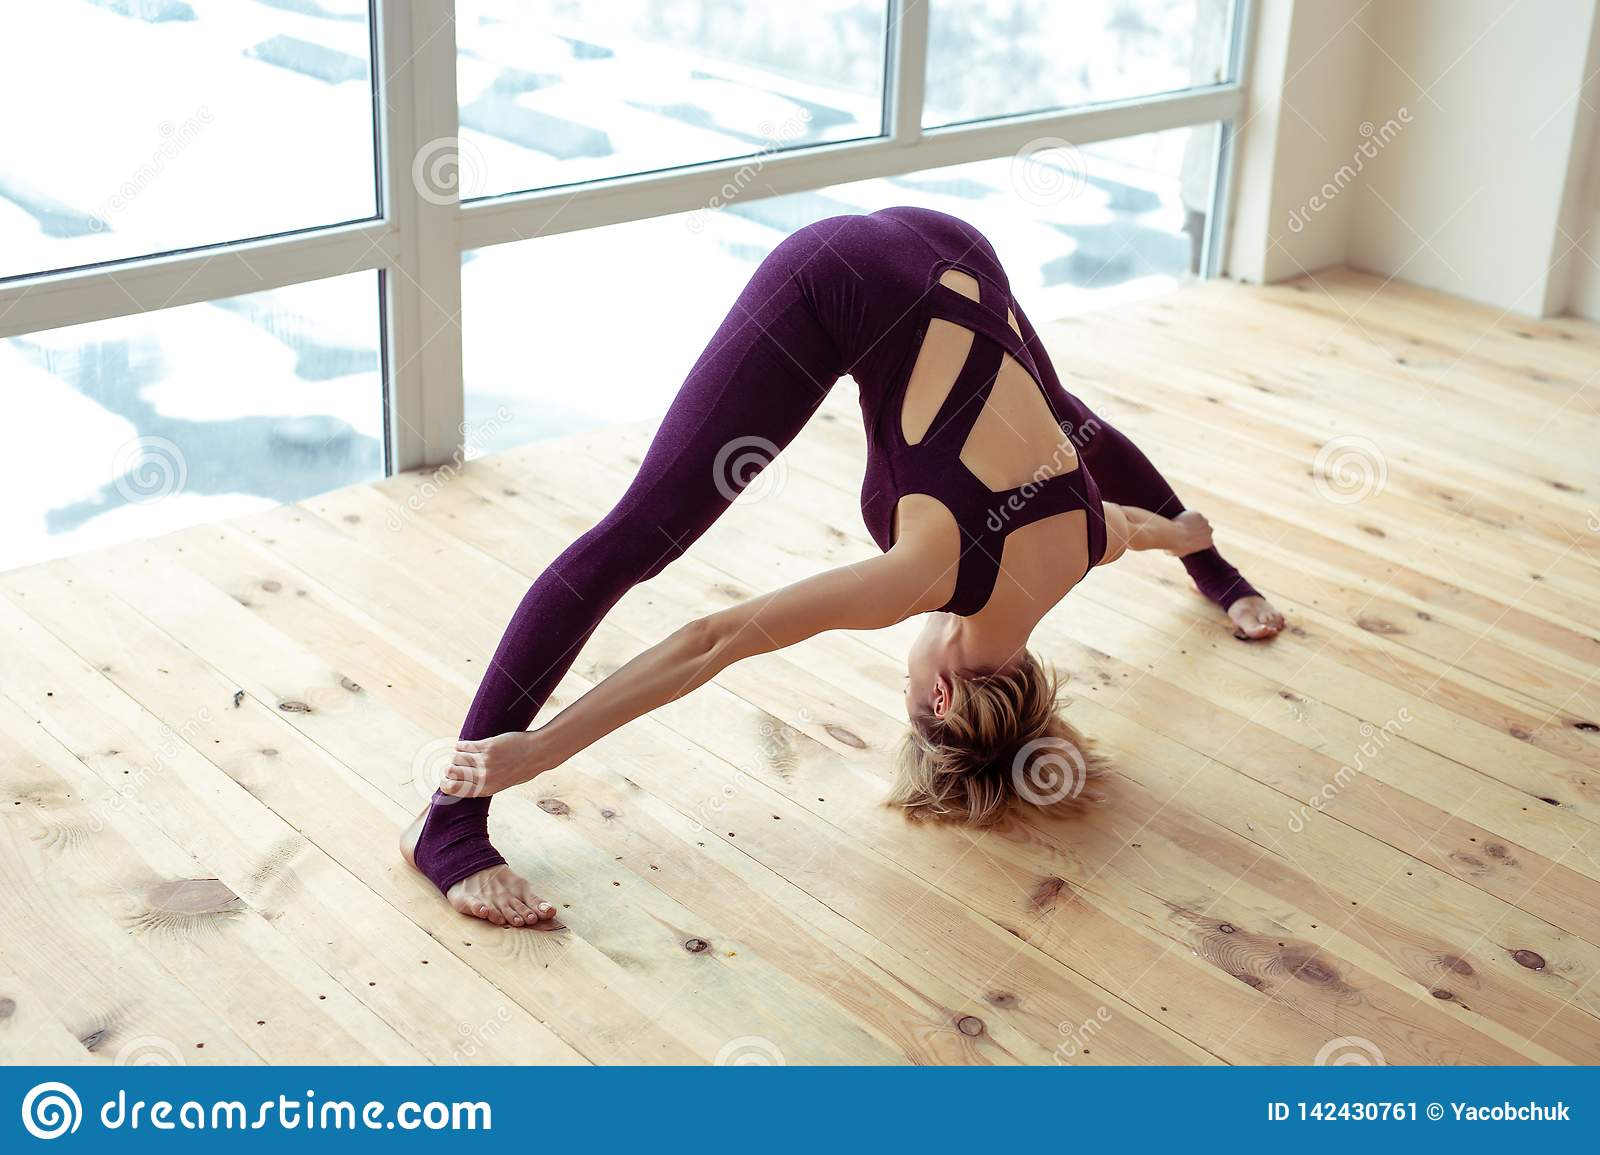 Short-haired lady being in good shape and doing yoga